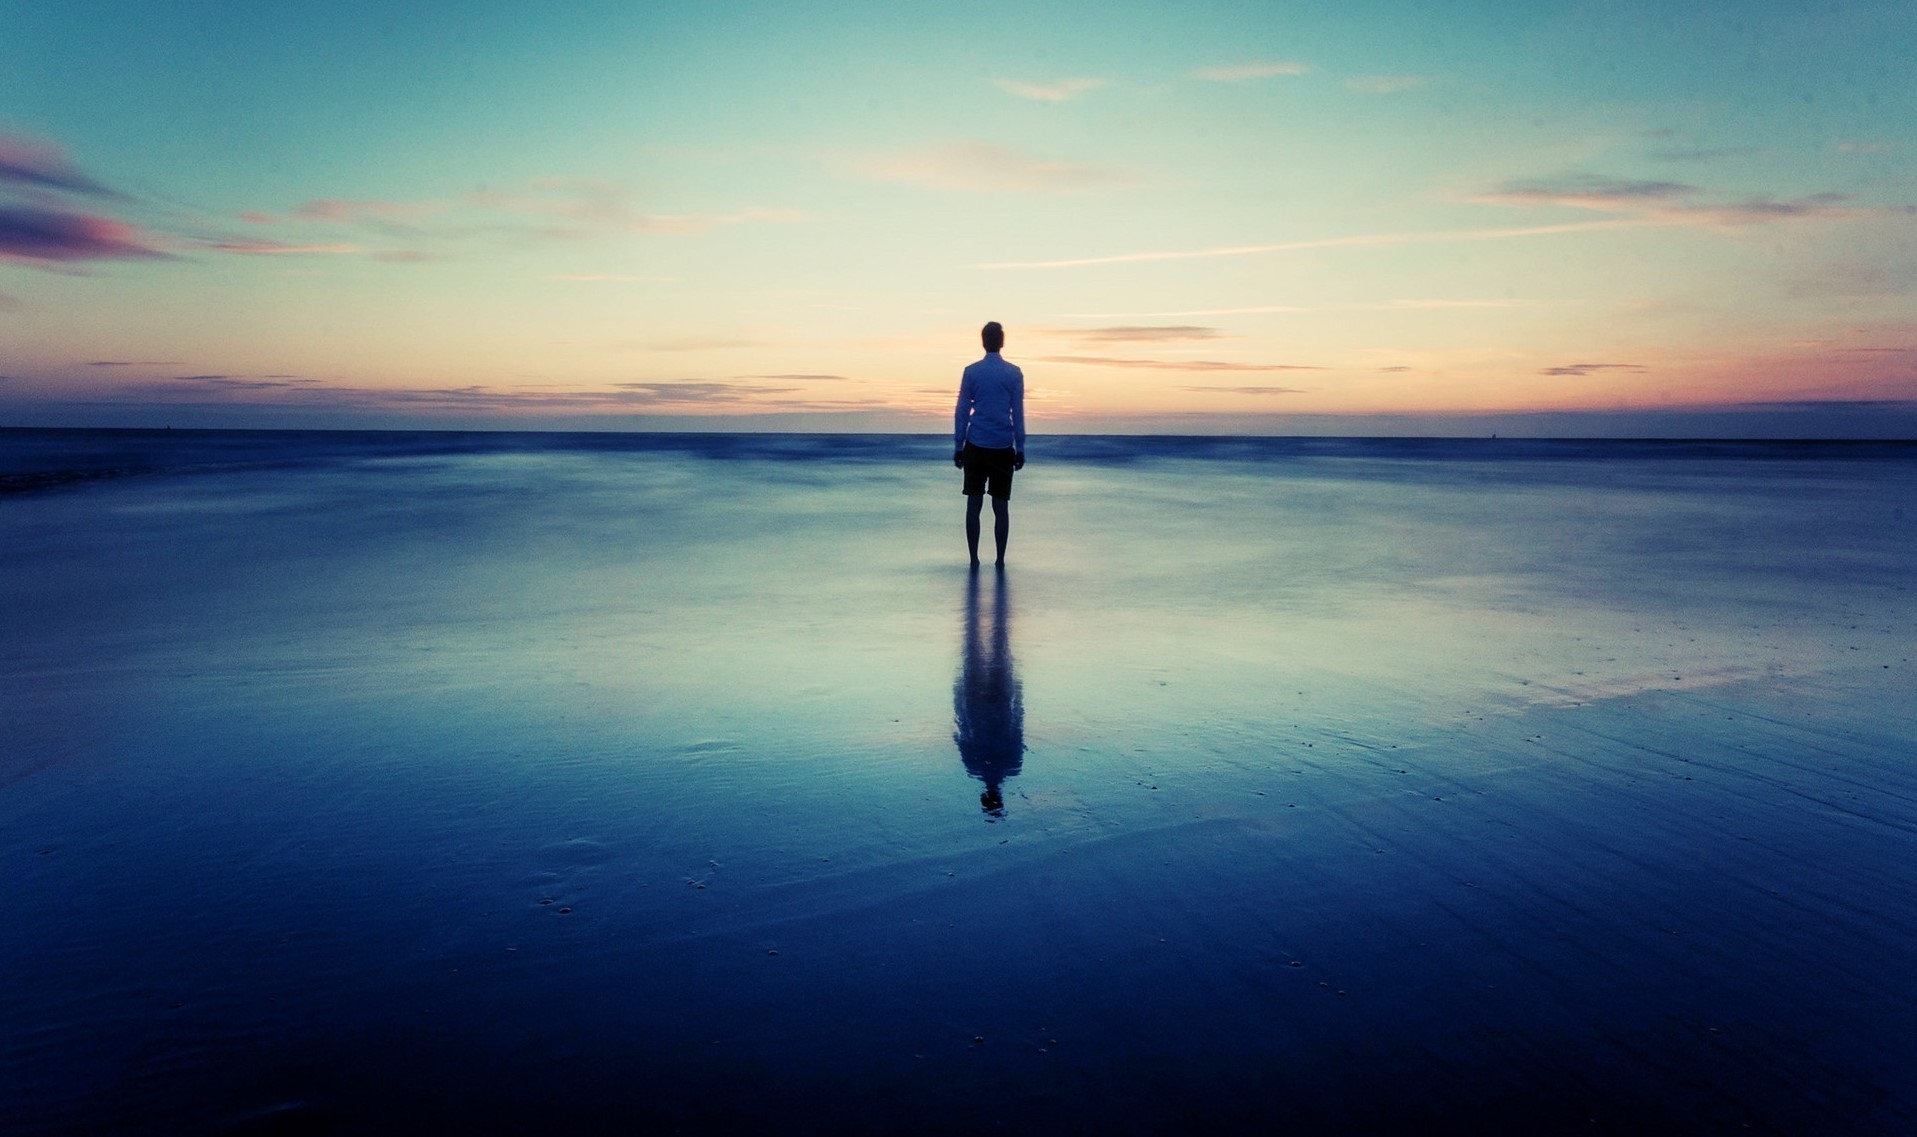 635903728850127570-2076758665 16561-alone-at-the-beach-1920x1200-photography-wallpaper